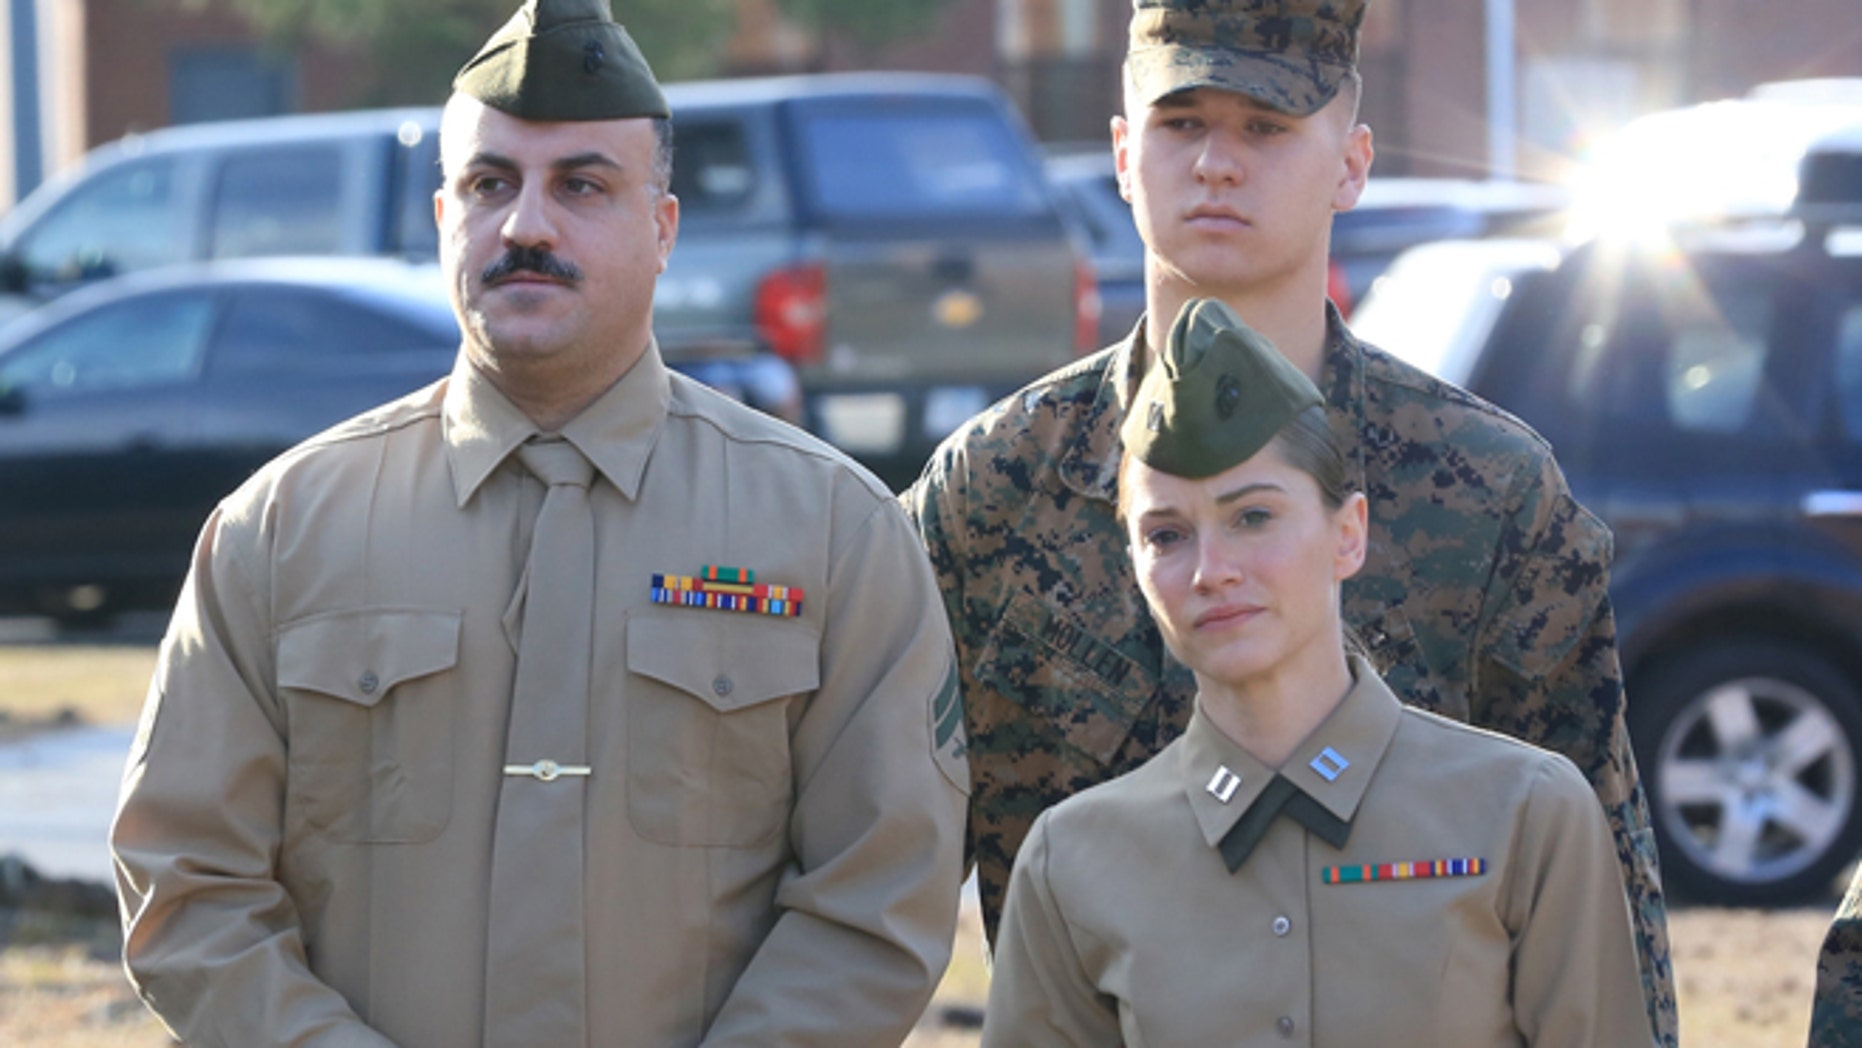 Feb. 9, 2015: Cpl. Wassef Hassoun, left, is escorted to the courtroom on Camp Lejeune in Jacksonville, N.C., for the beginning of his court martial trial.  (AP/The Daily News, John Althouse)